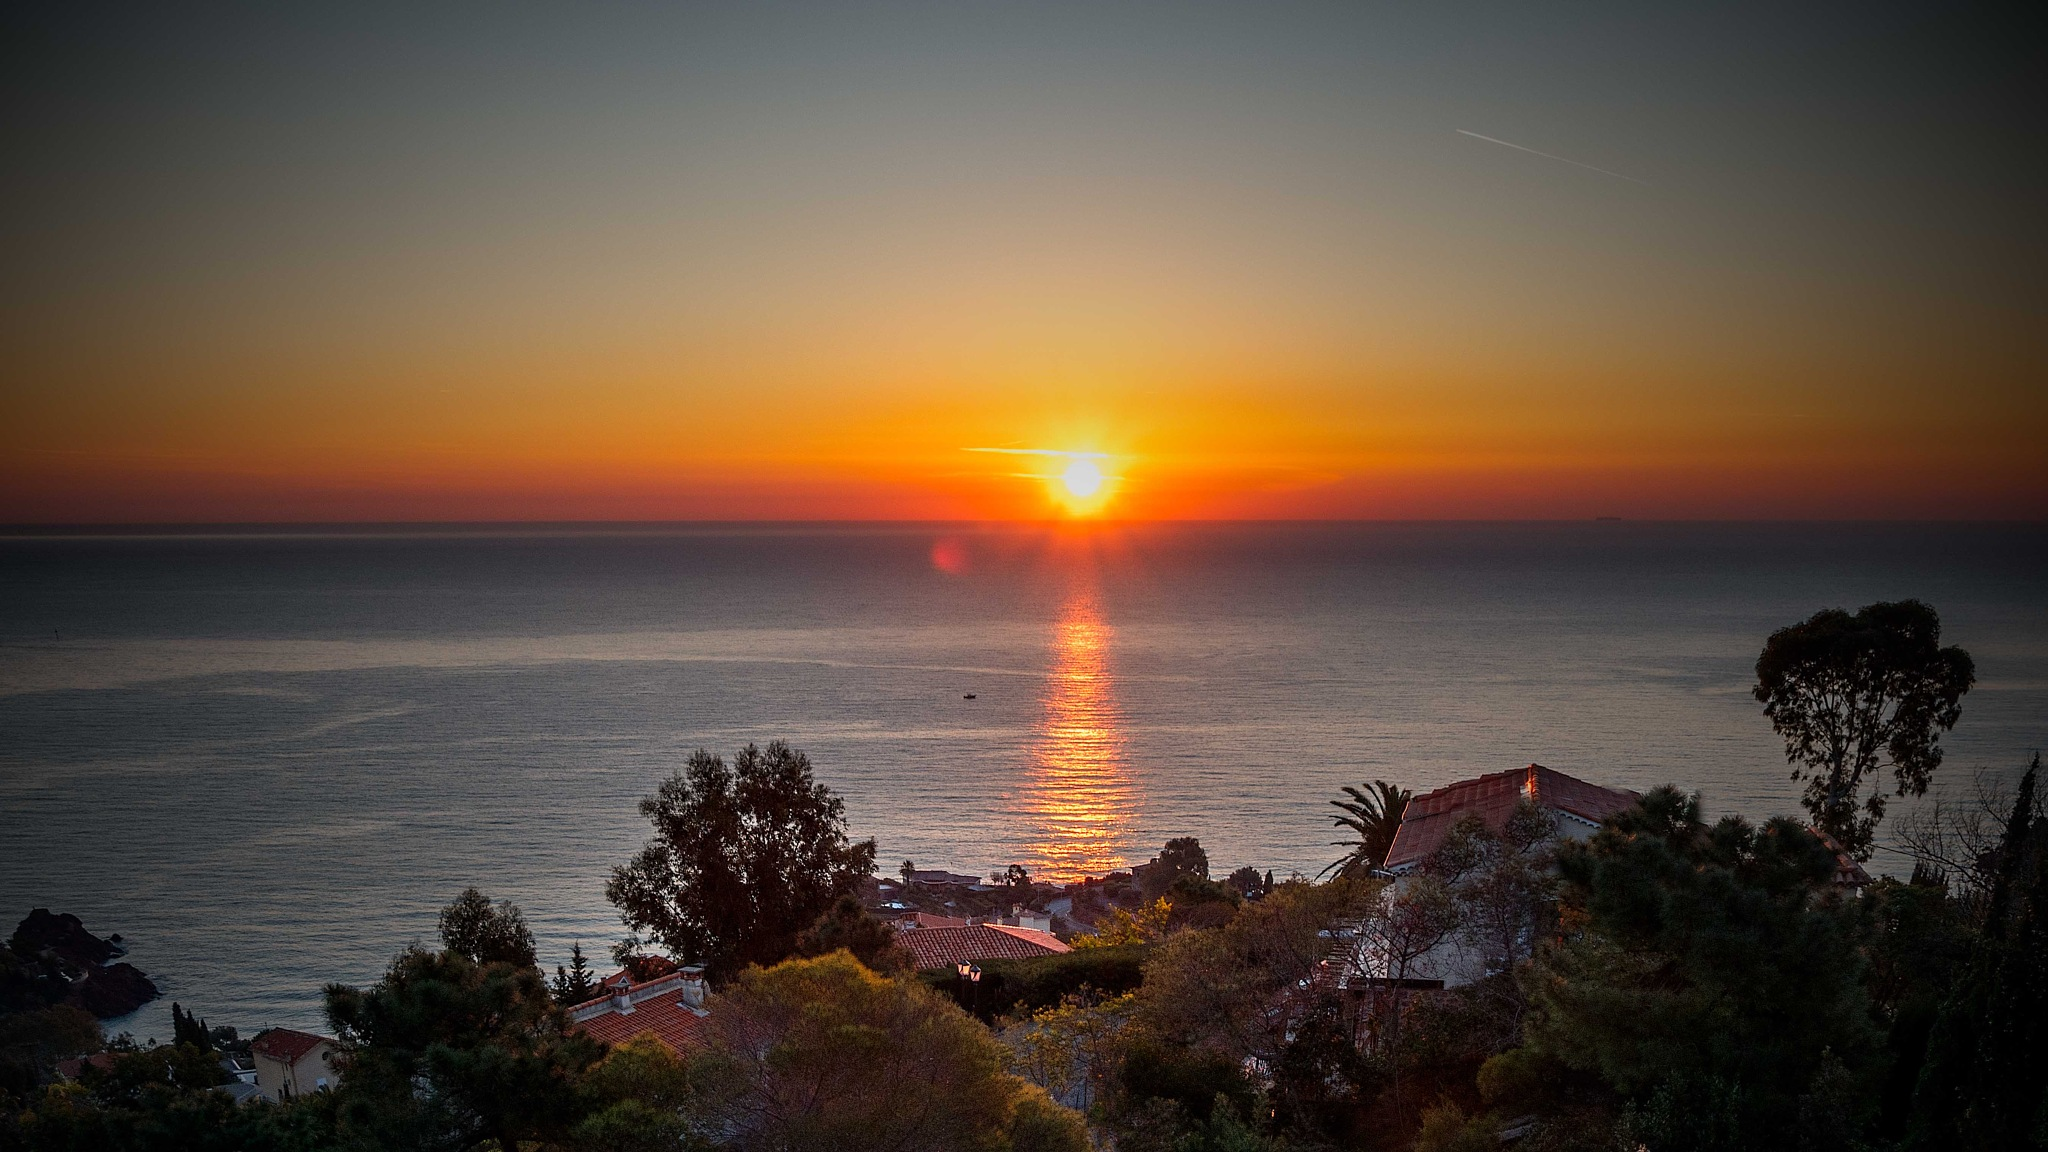 This morning sunrise over the Mediterranean, Cannes, France. by Jason Yoon